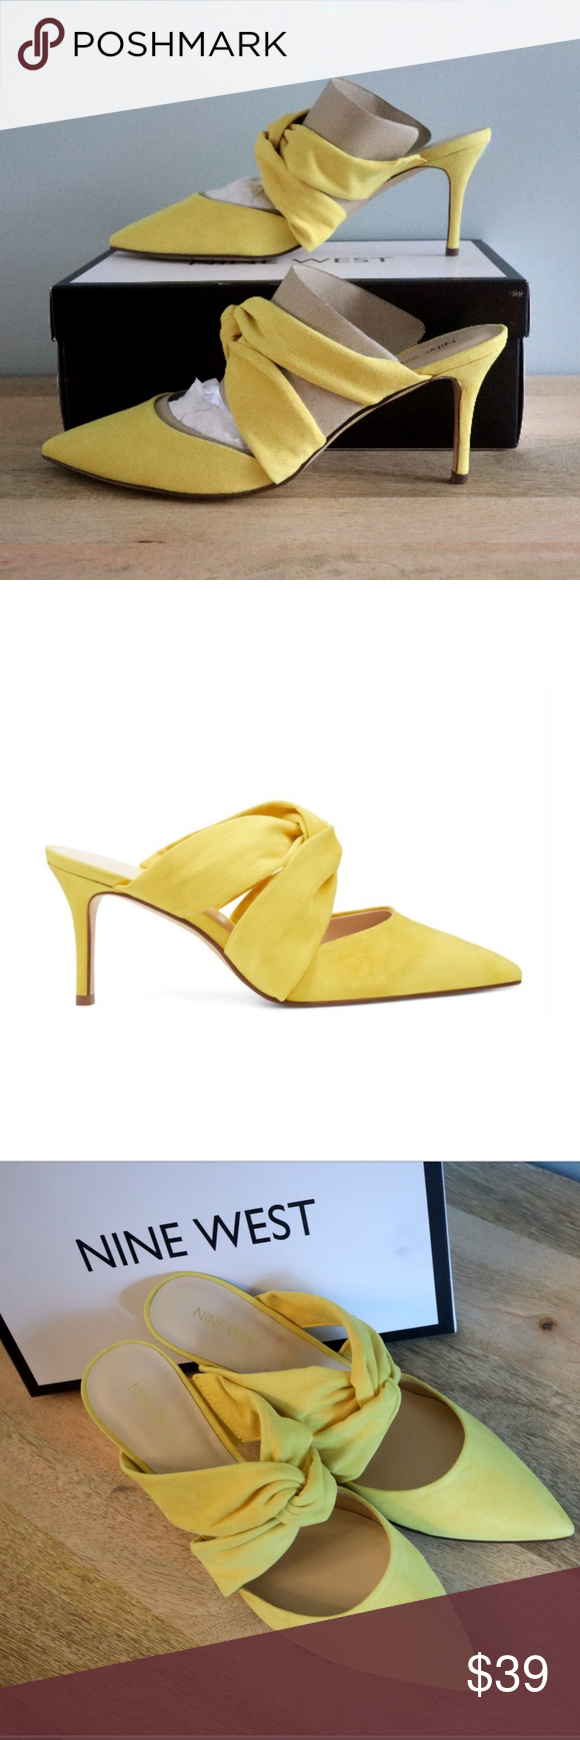 Nine West Yellow Knotted Mules Heels 9